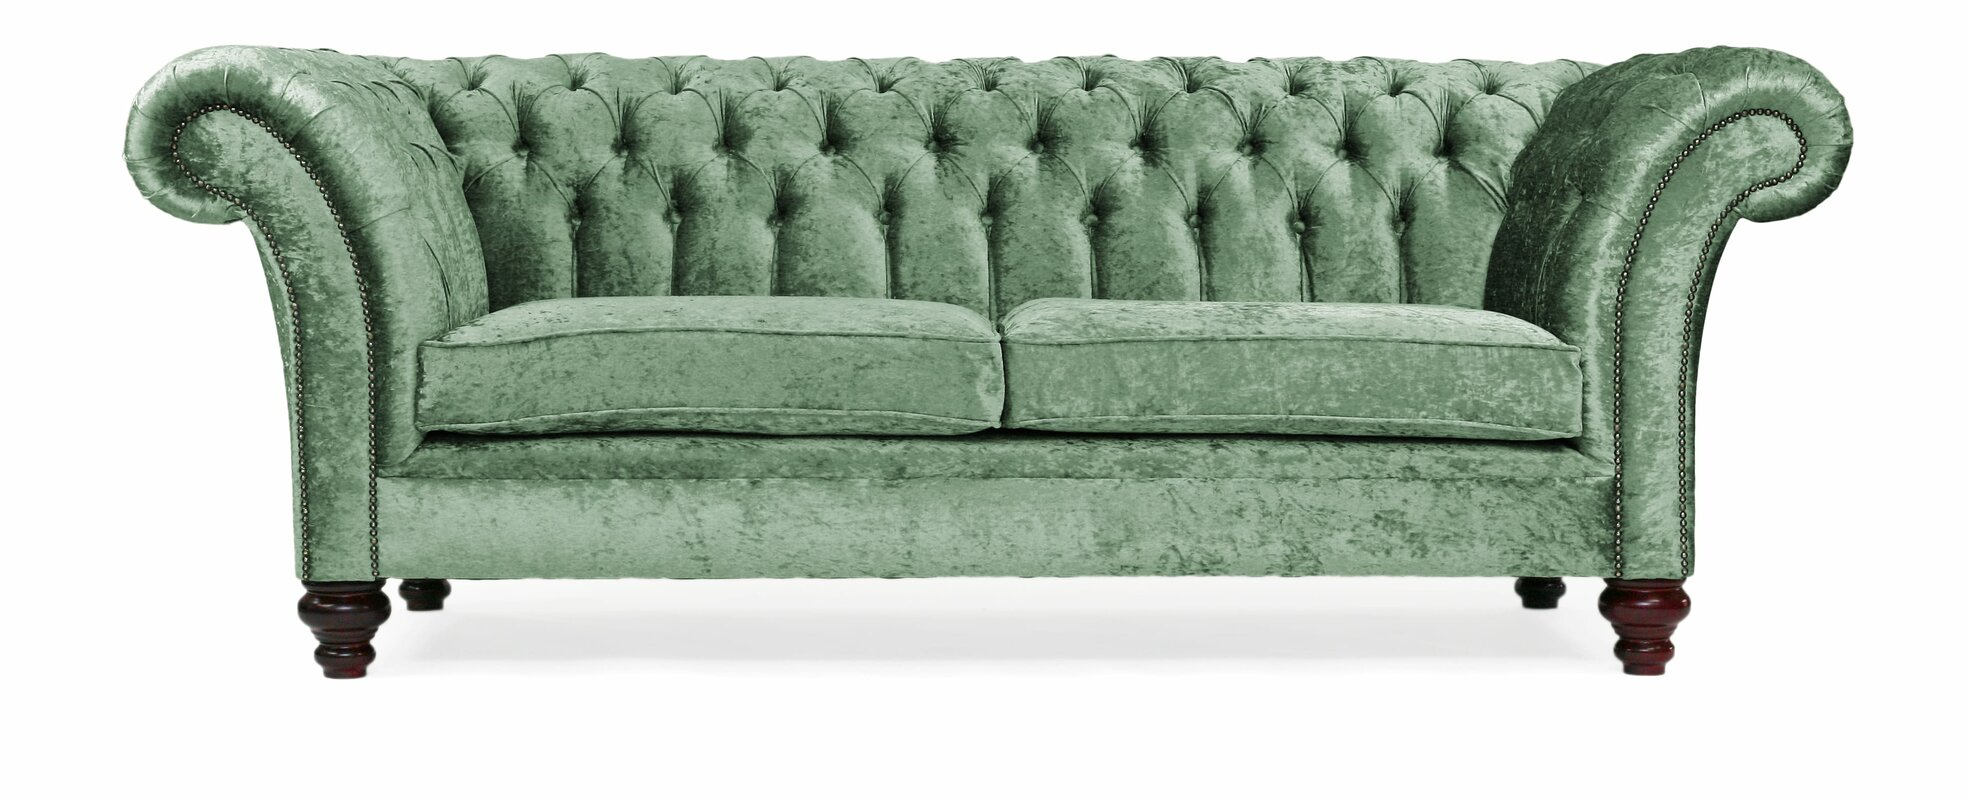 Milano 2 Seater Chesterfield Sofa